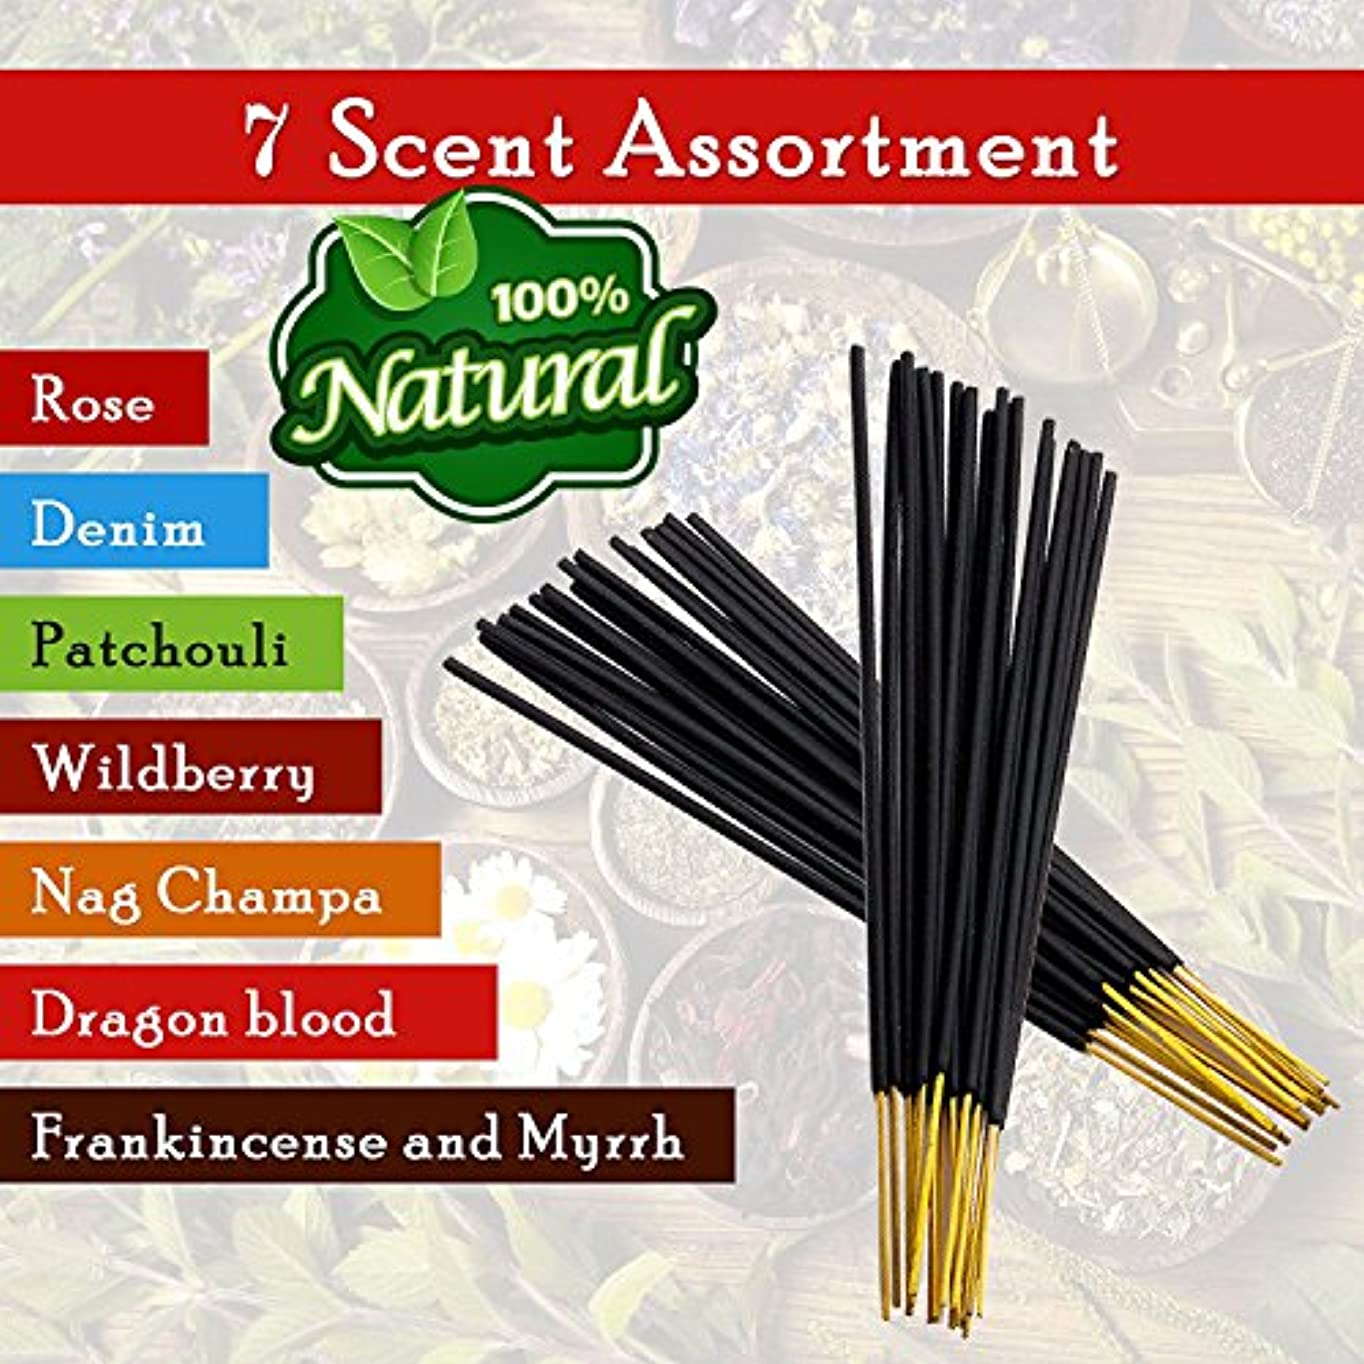 阻害する器用クラシック7-assorted-scents-Frankincense-and-Myrrh-Patchouli-Denim-Rose Dragon-blood-Nag-champa-Wildberry 100%-Natural-Incense-Sticks...